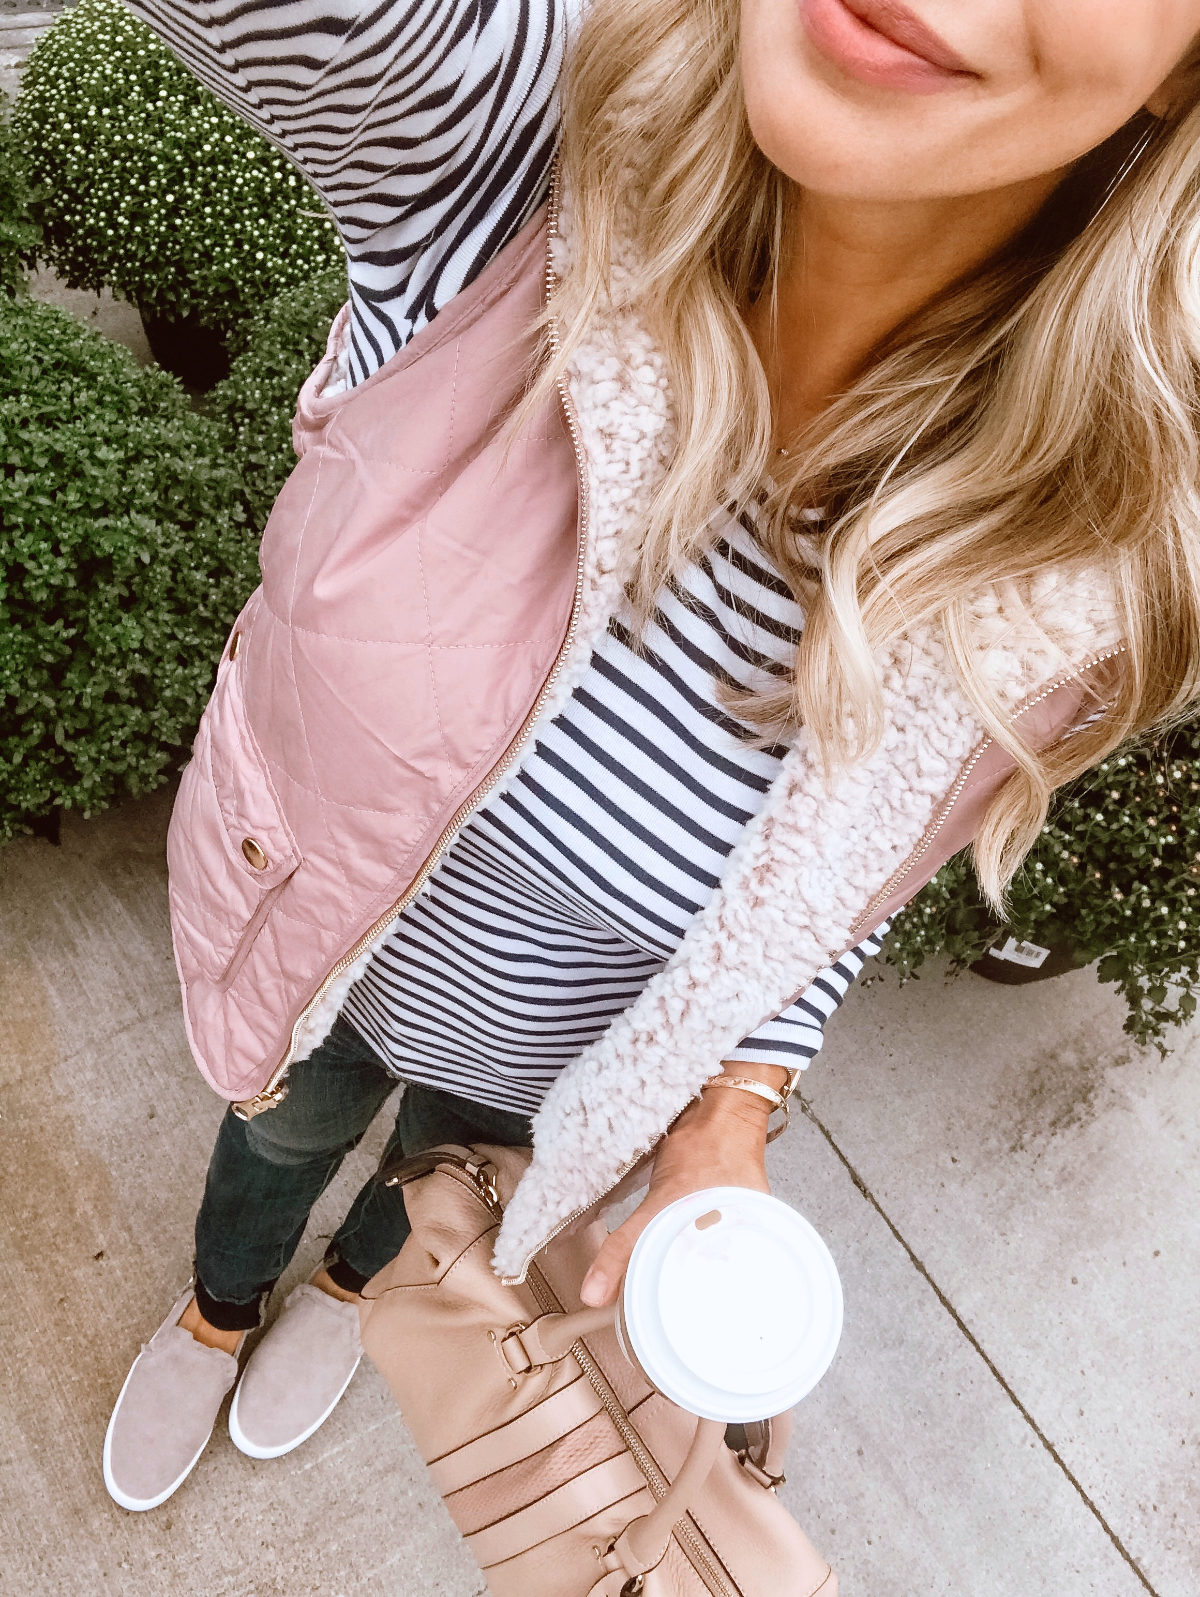 Fall Outfit Inspiration - puffer vest and striped top with jeans and sneakers